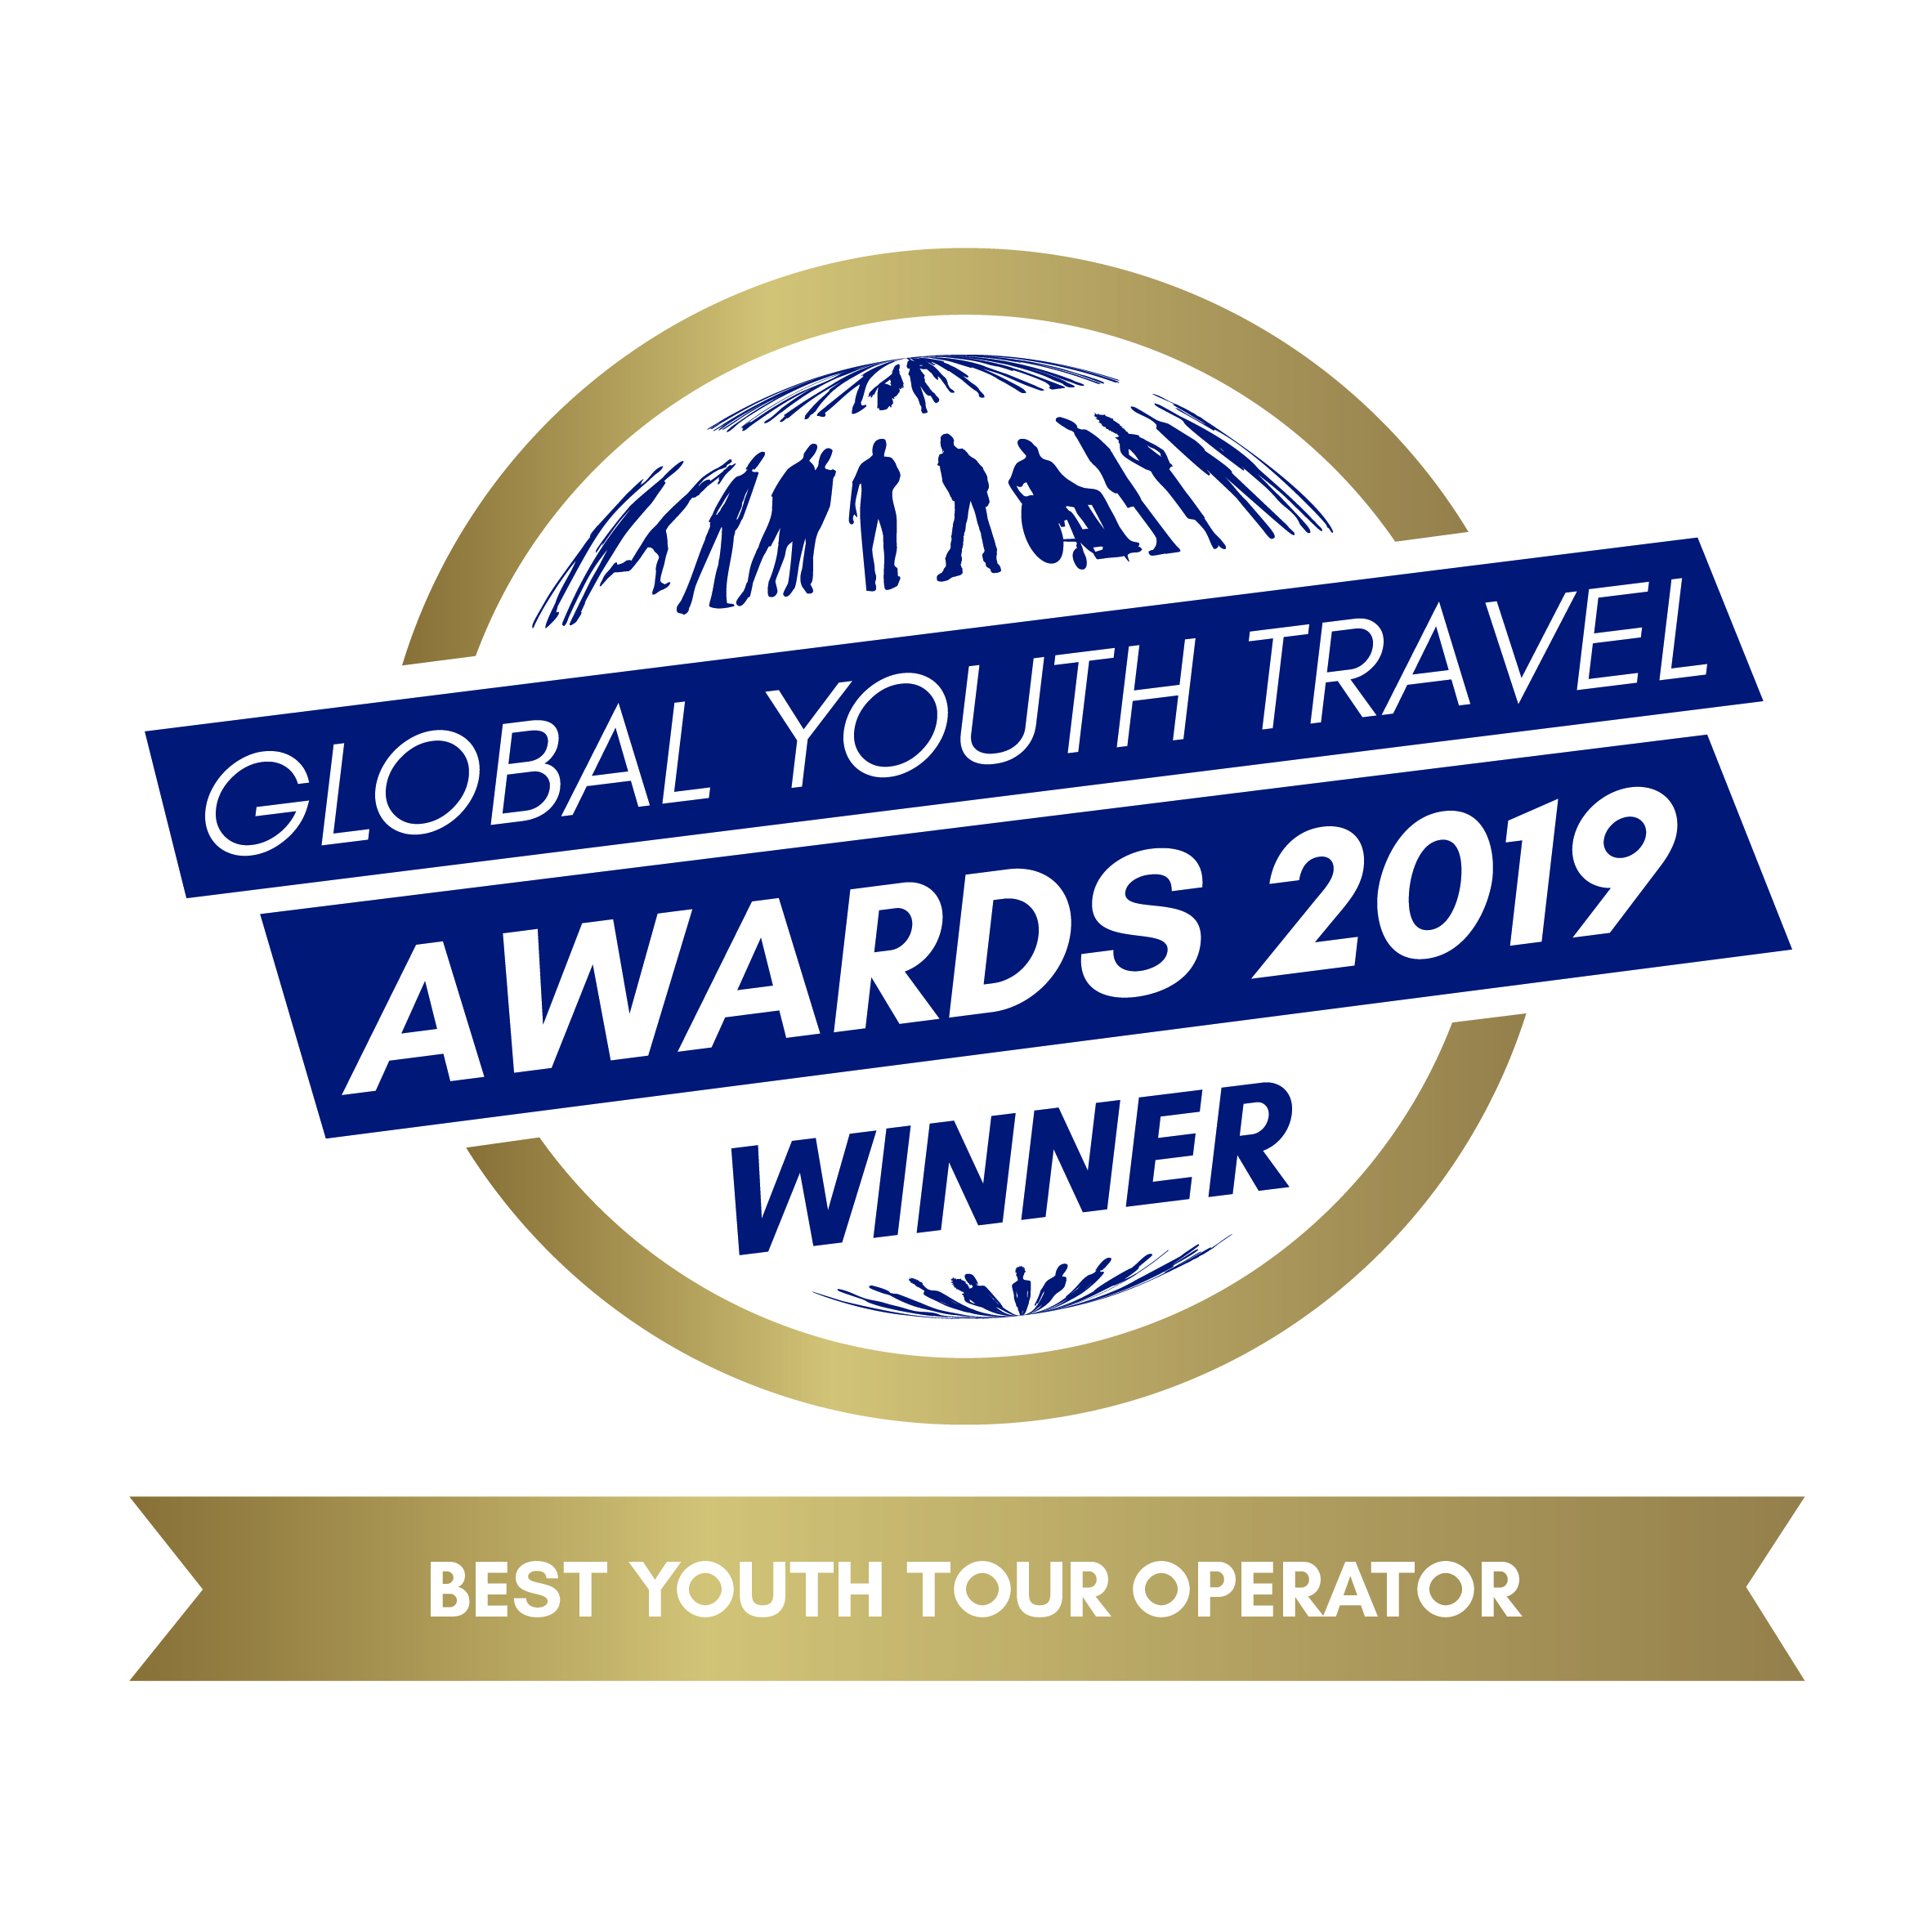 Rustic was awarded the Best Youth Tour Operator